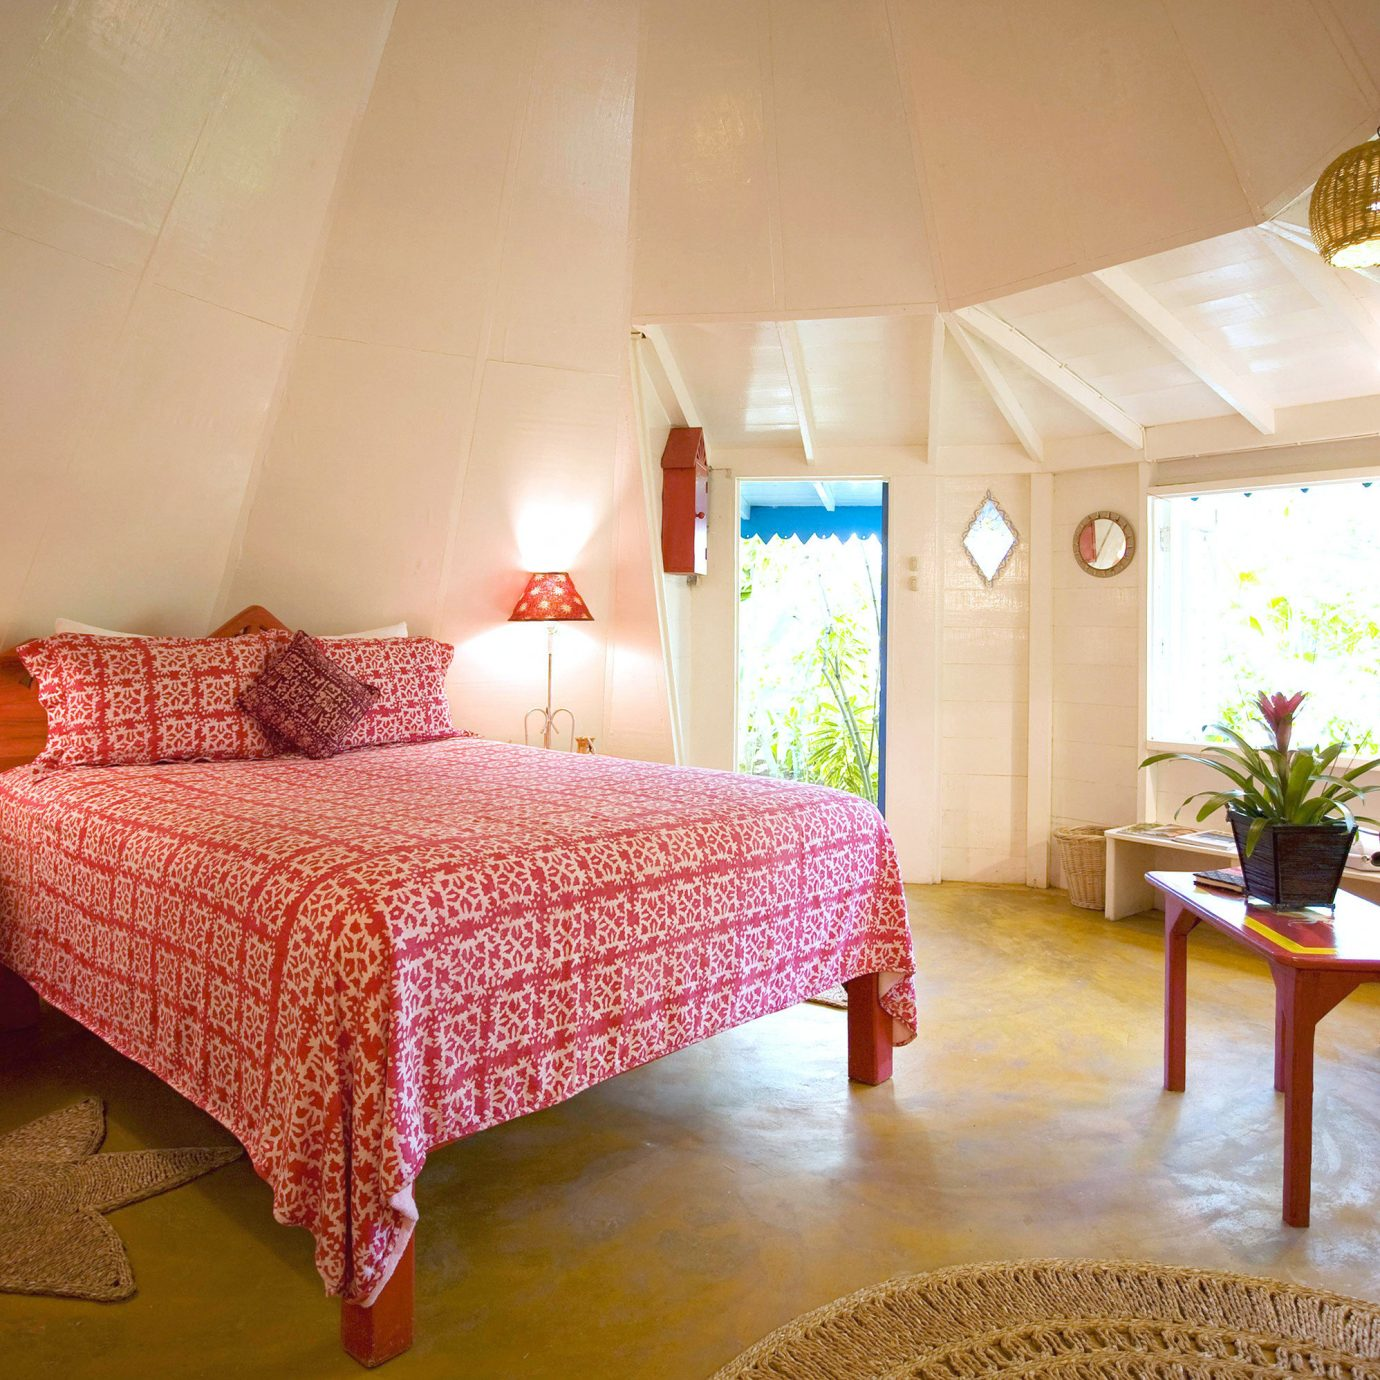 Bedroom Luxury Romance Romantic Tropical red property Suite cottage Villa living room Resort bed sheet